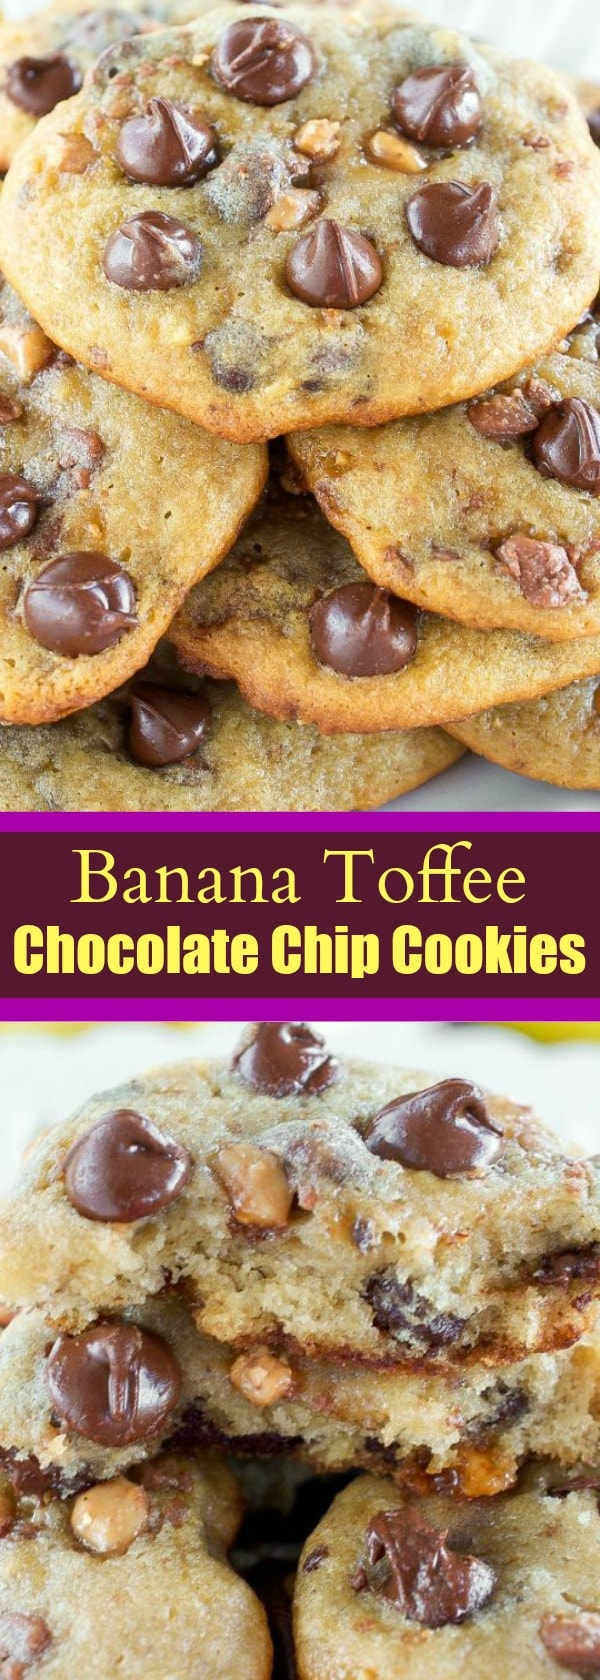 banana-toffee-chocolate-chip-cookies-2